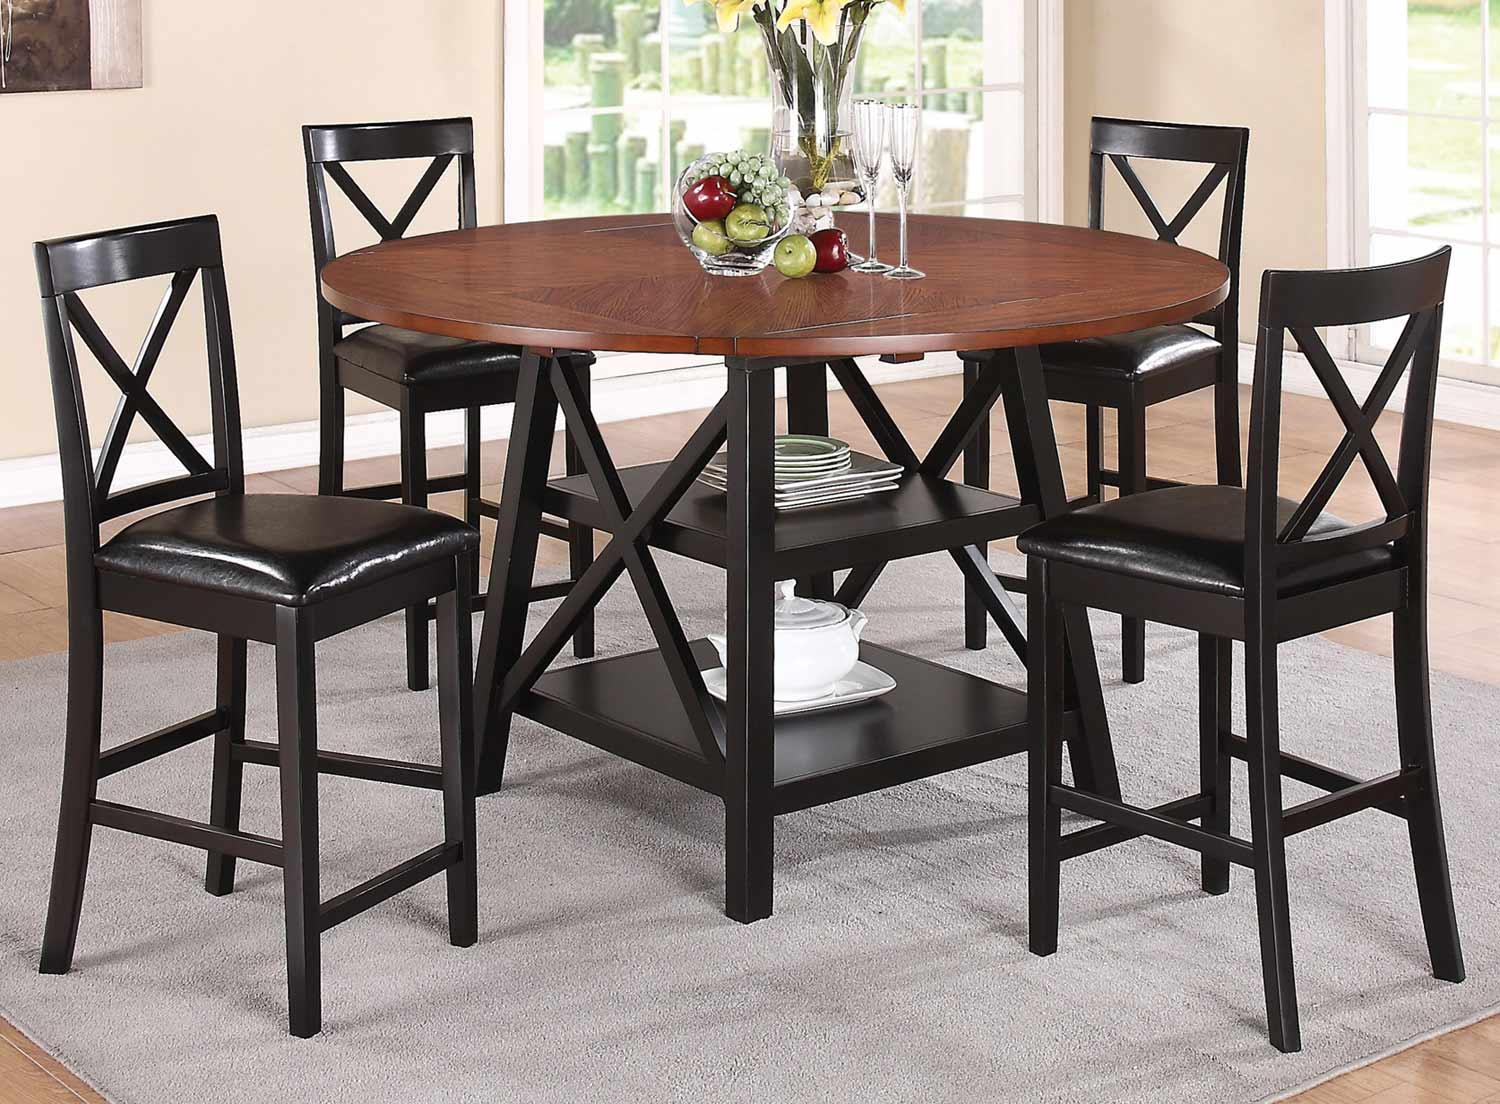 Counter Height Rustic Dining Sets : Austin Counter Height Dining Set - Rustic Oak/Black 104178-Pub-Set ...